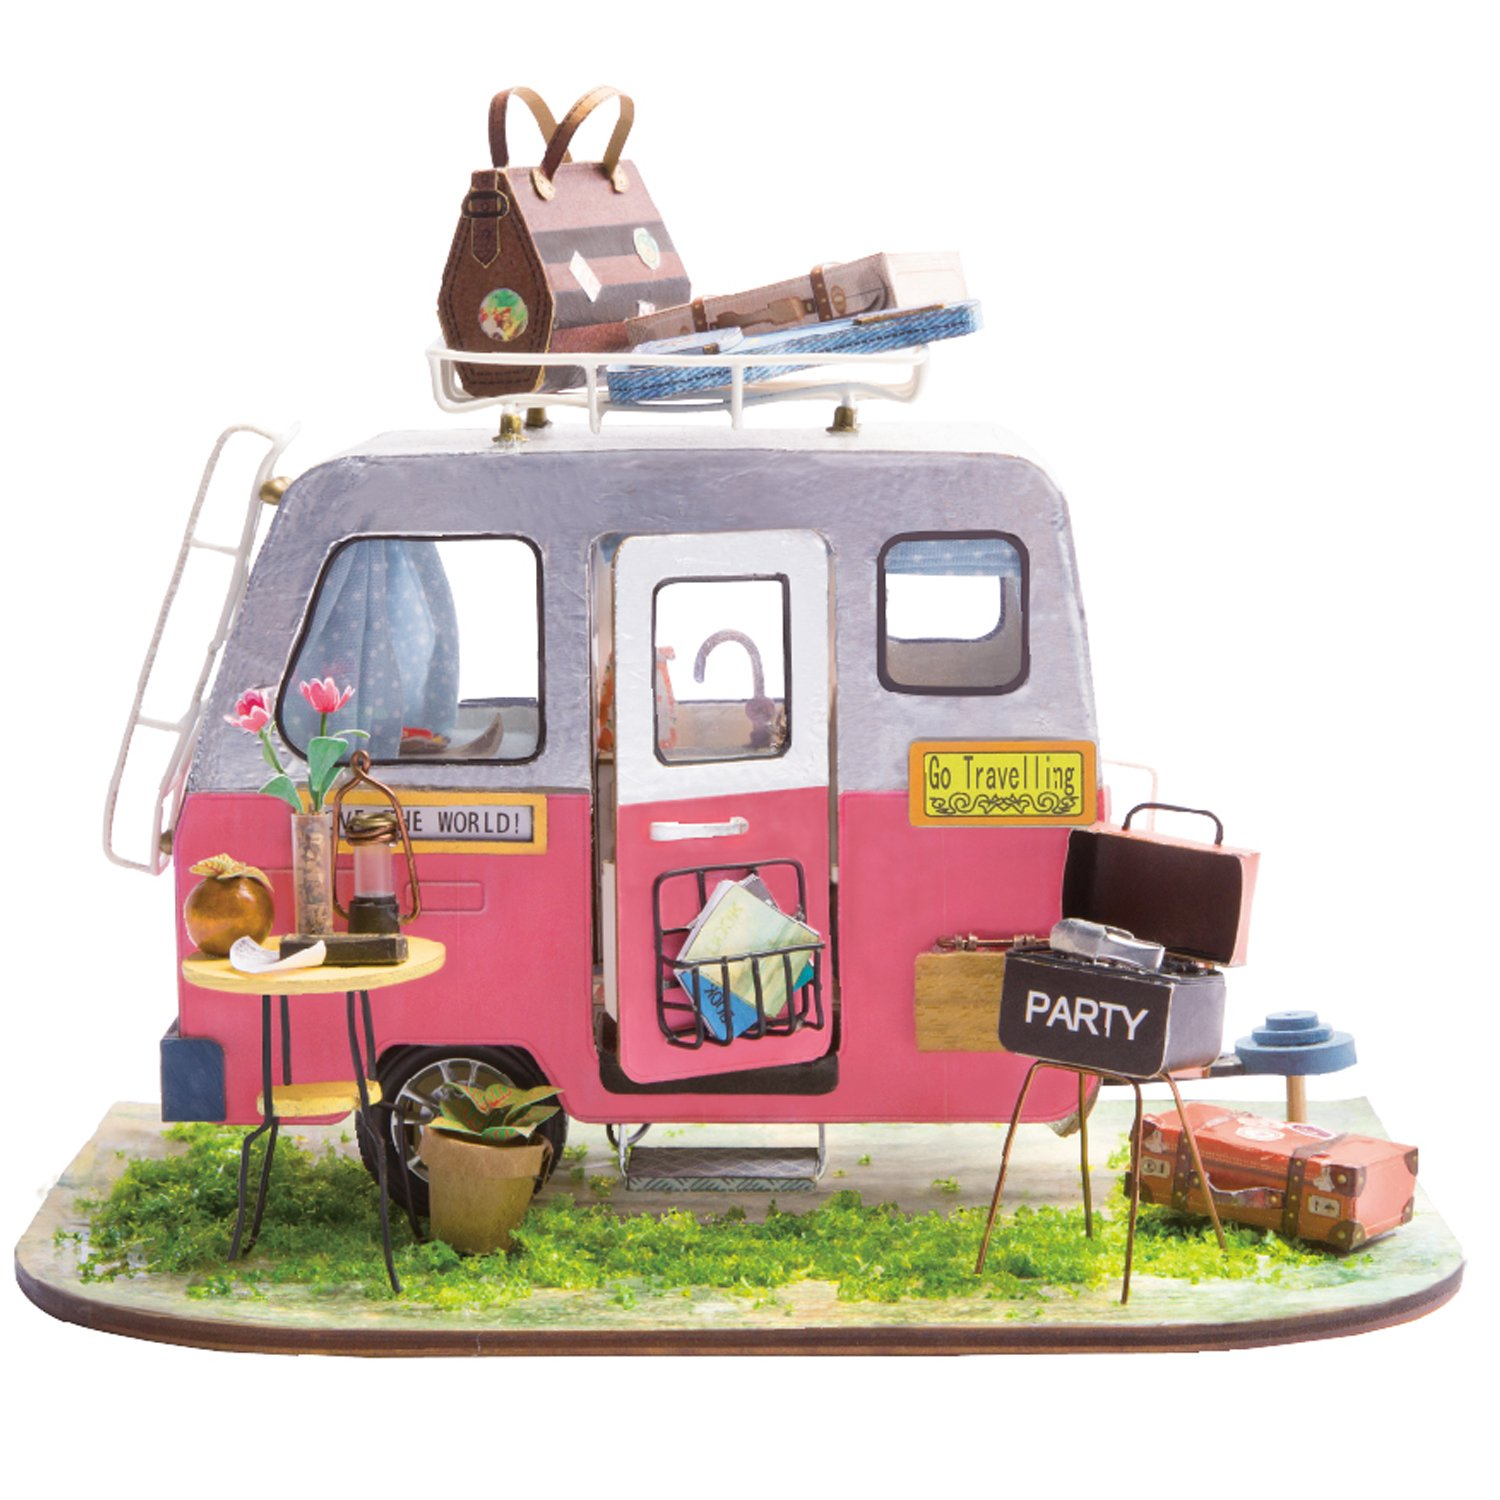 Rolife Mini Diy House Kit-Woodcraft Construction Kit-Wooden Model Building Set-Mini House Crafts-Creative Birthday For Boys Girls Women and Friends(Camper)